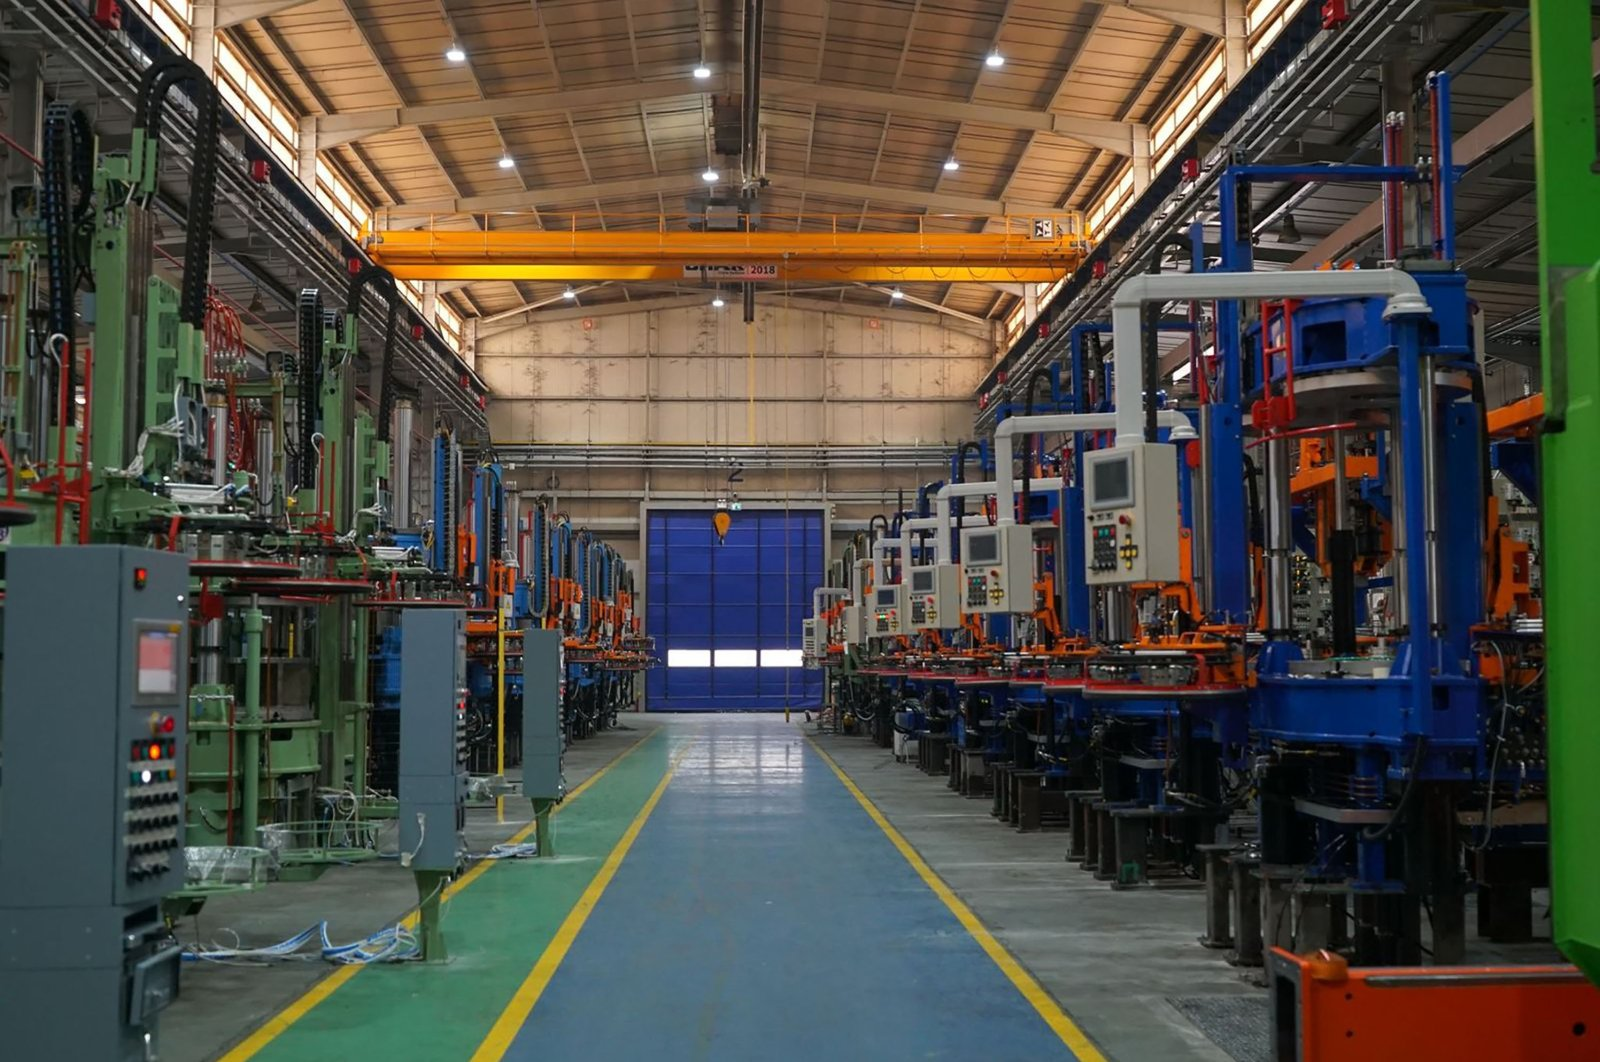 A mold press machinery factory in the Arslanbey Organized Industrial Zone in Kocaeli, northwestern Turkey, June 26, 2020. (Sabah Photo)